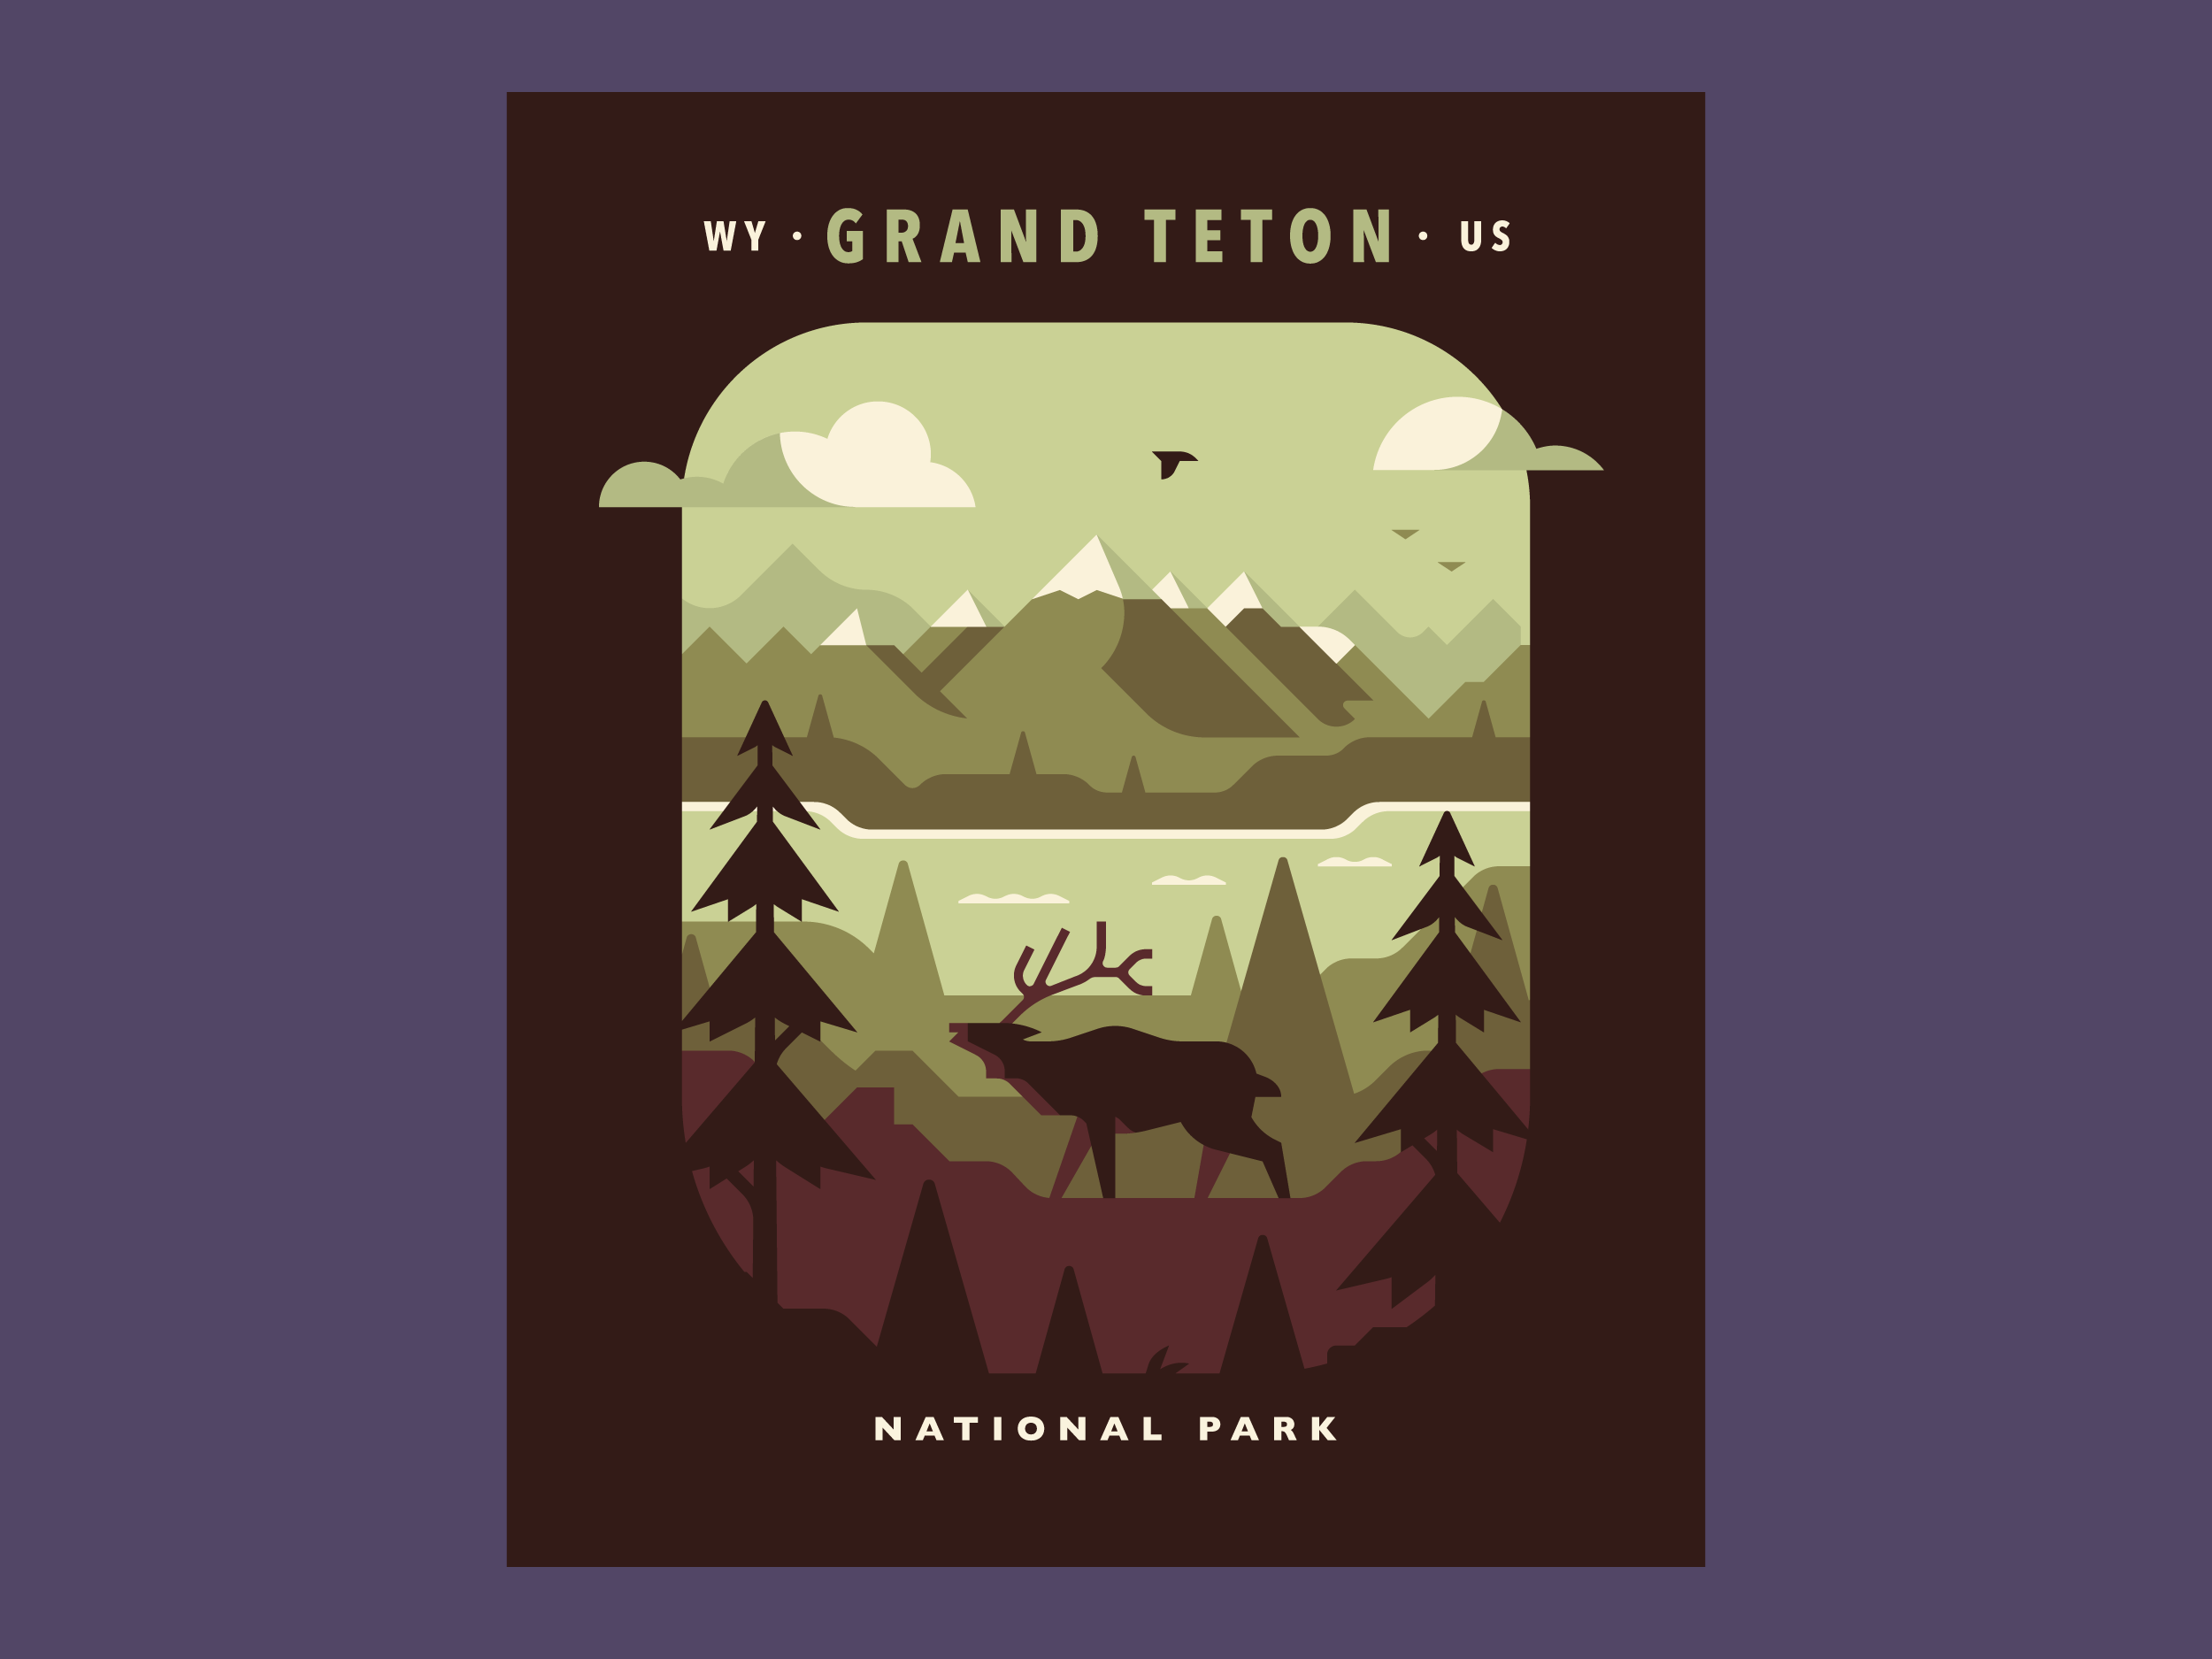 Tetons - National Parks prints and posters by Canopy Design and Illustration